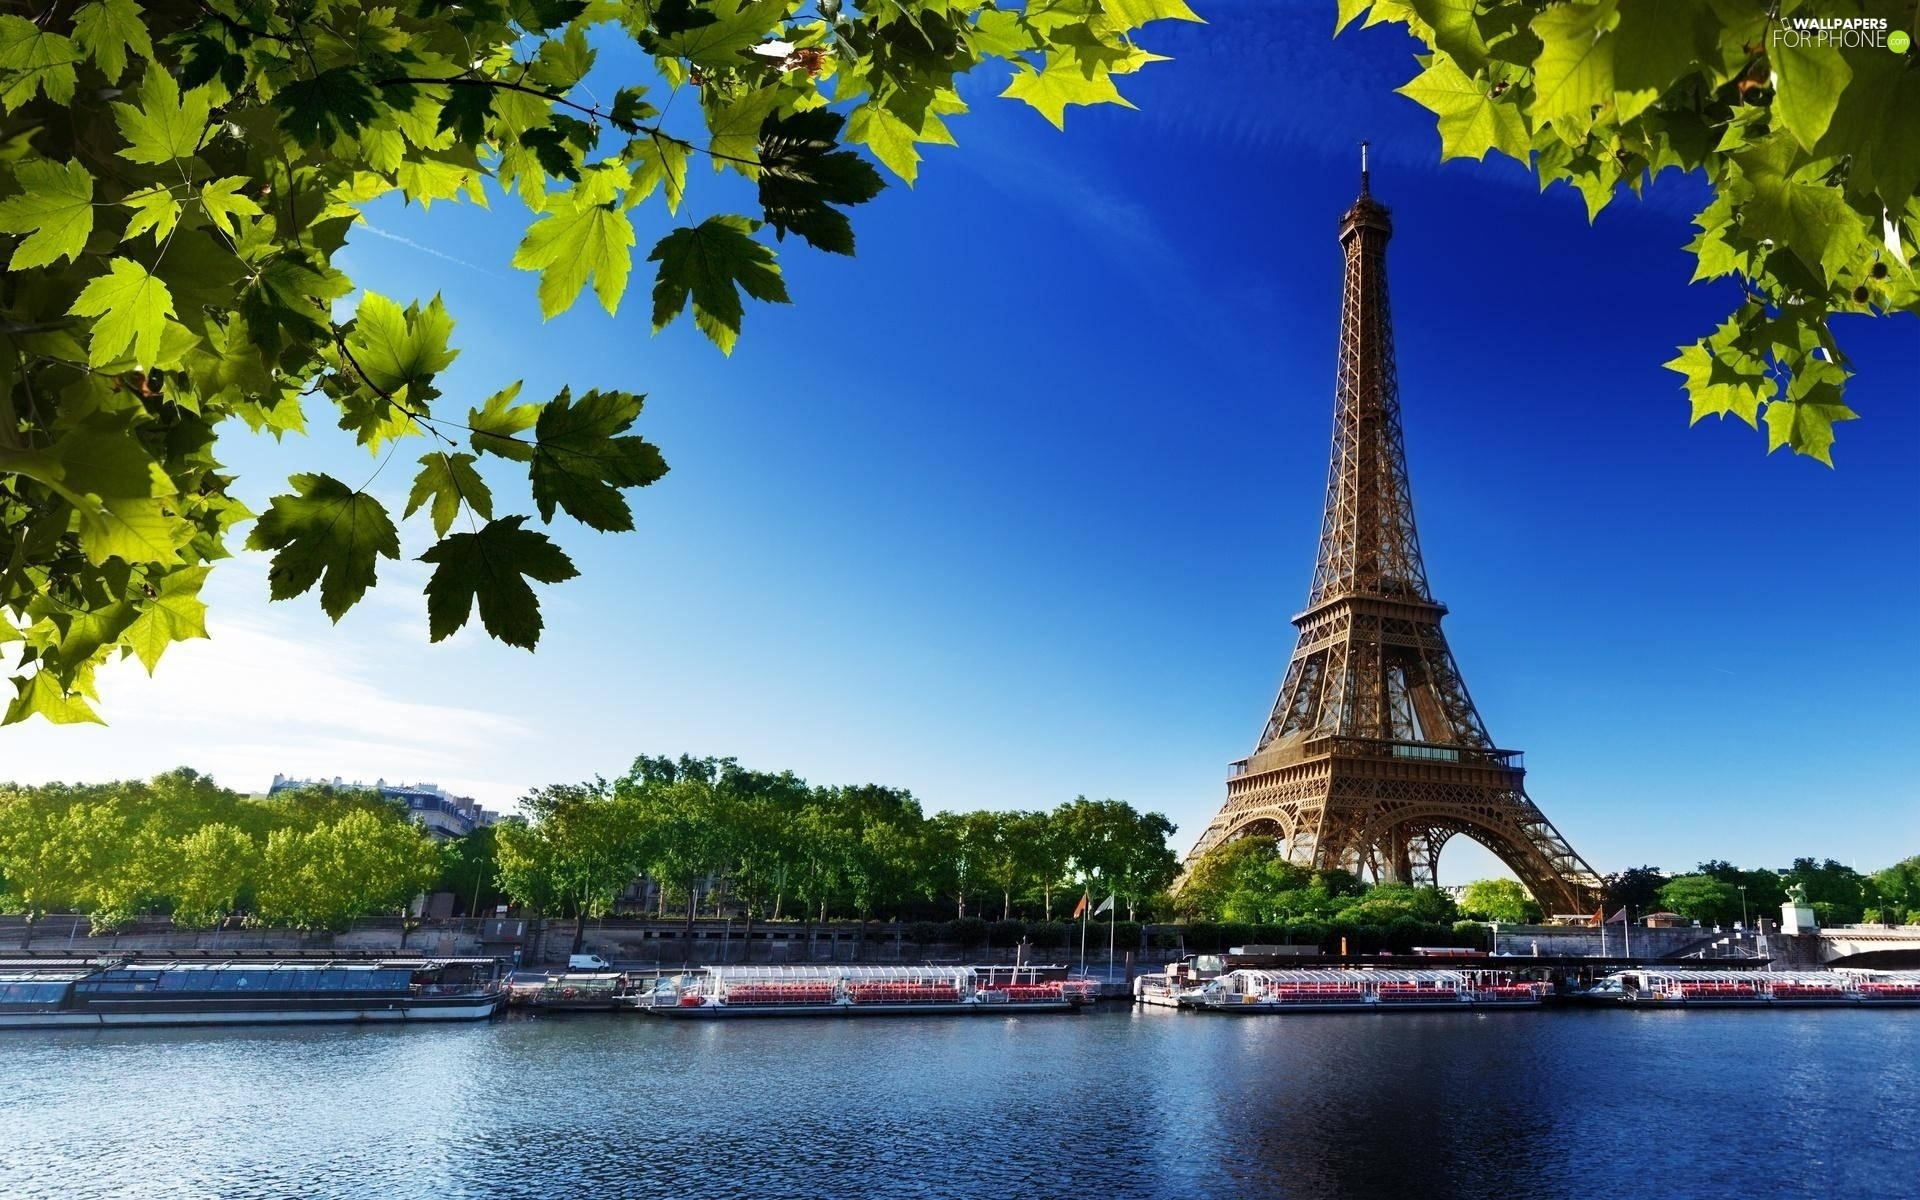 France, Eiffla Tower, Paris